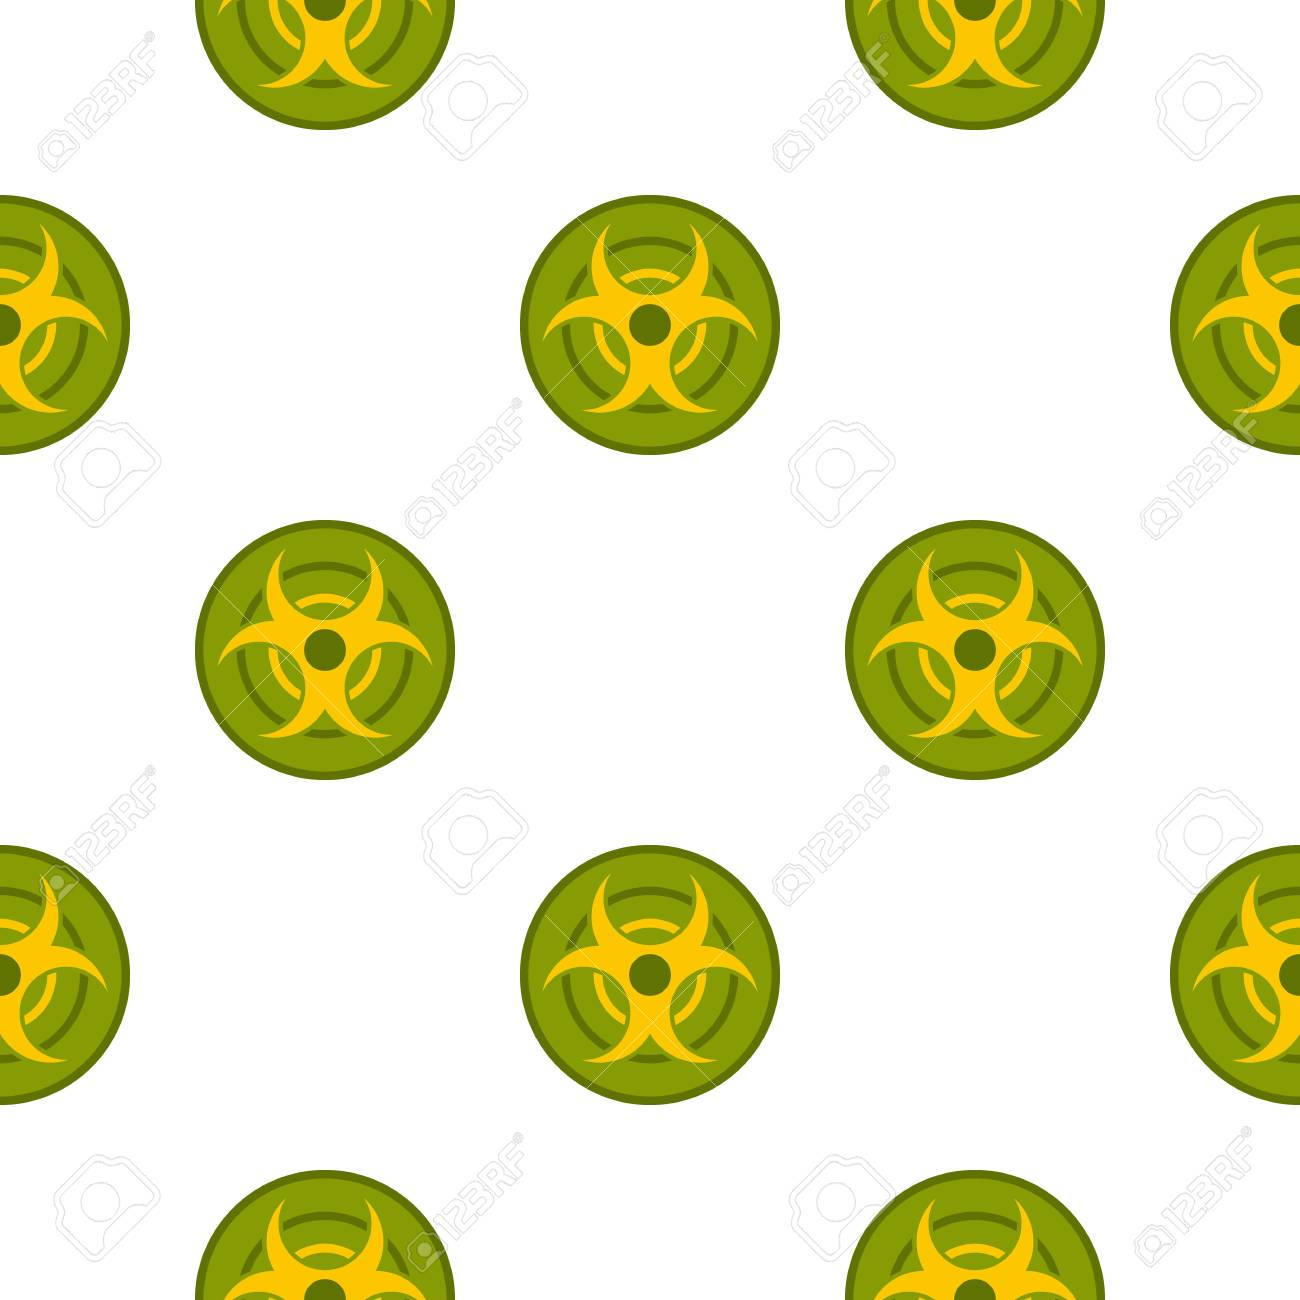 Biohazard Symbol Pattern Seamless Royalty Free Cliparts Vectors